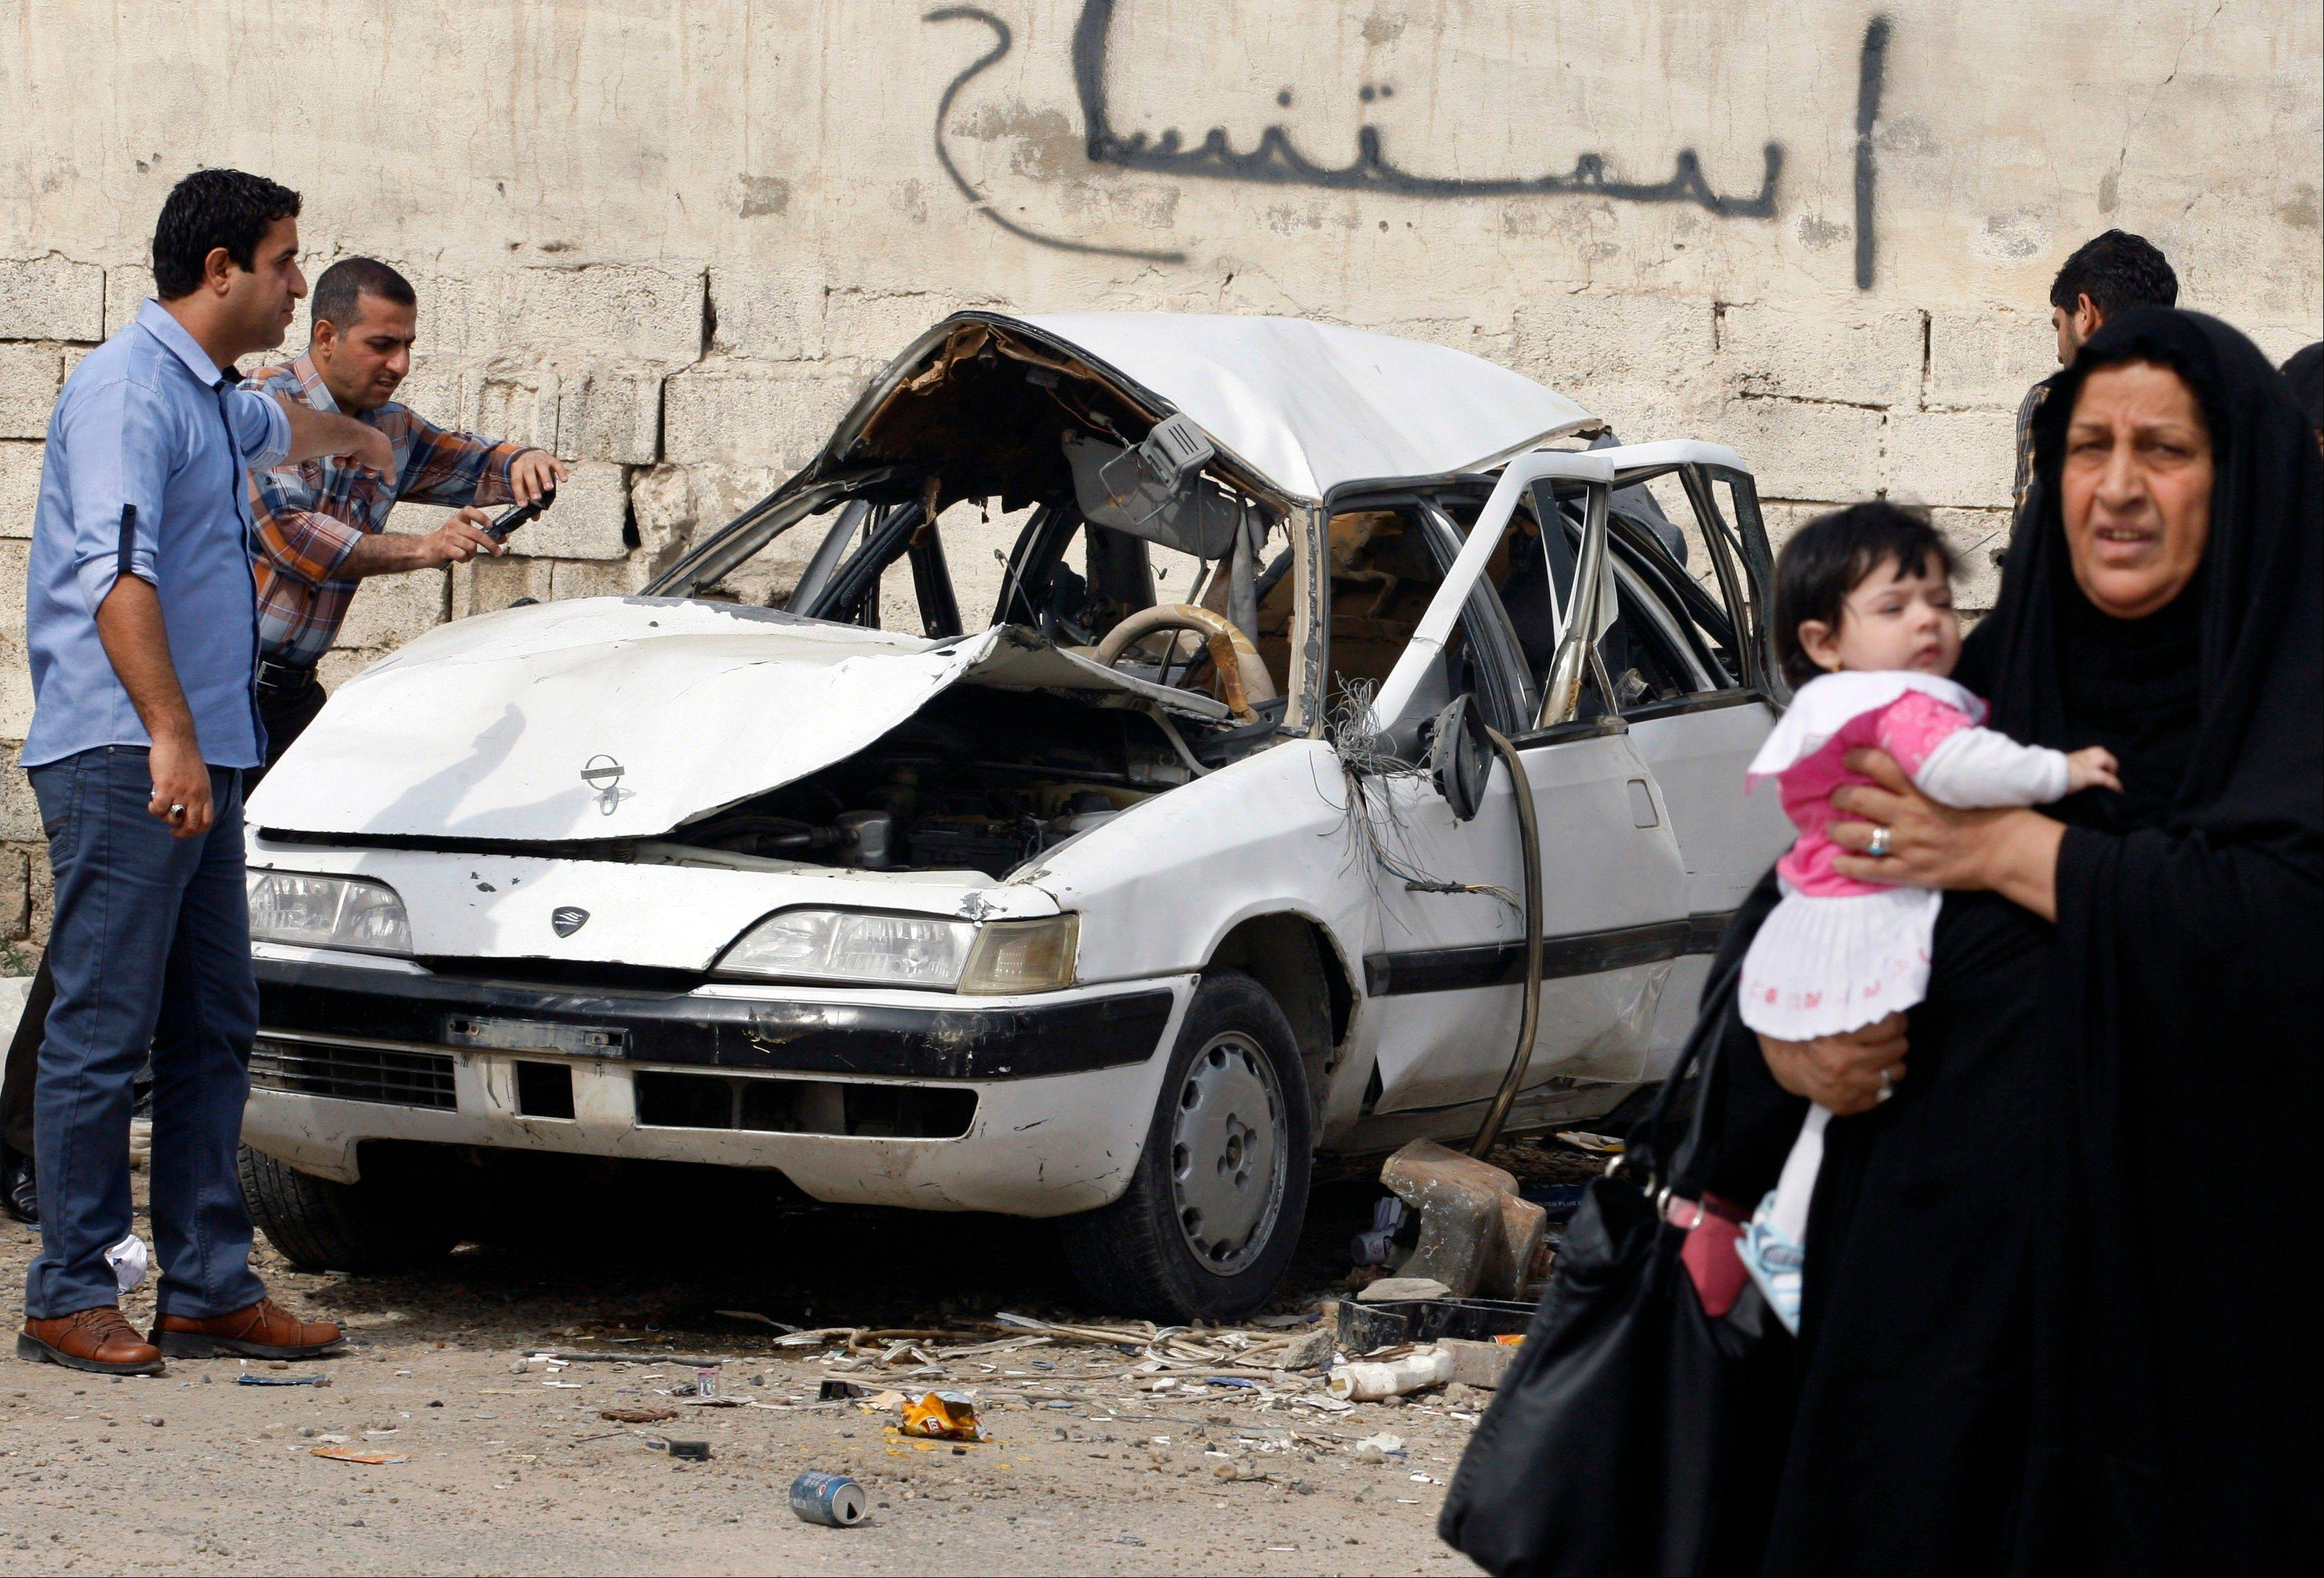 People inspect a damaged car at the scene of a car-bomb attack in Zayona neighborhood of eastern Baghdad, Iraq, Wednesday, March 20, 2013. An al-Qaida-affiliated group in Iraq claimed responsibility for bloody attacks that killed dozens of people across the country on Tuesday, the eve of the 10th anniversary of the 2003 U.S.-led invasion.